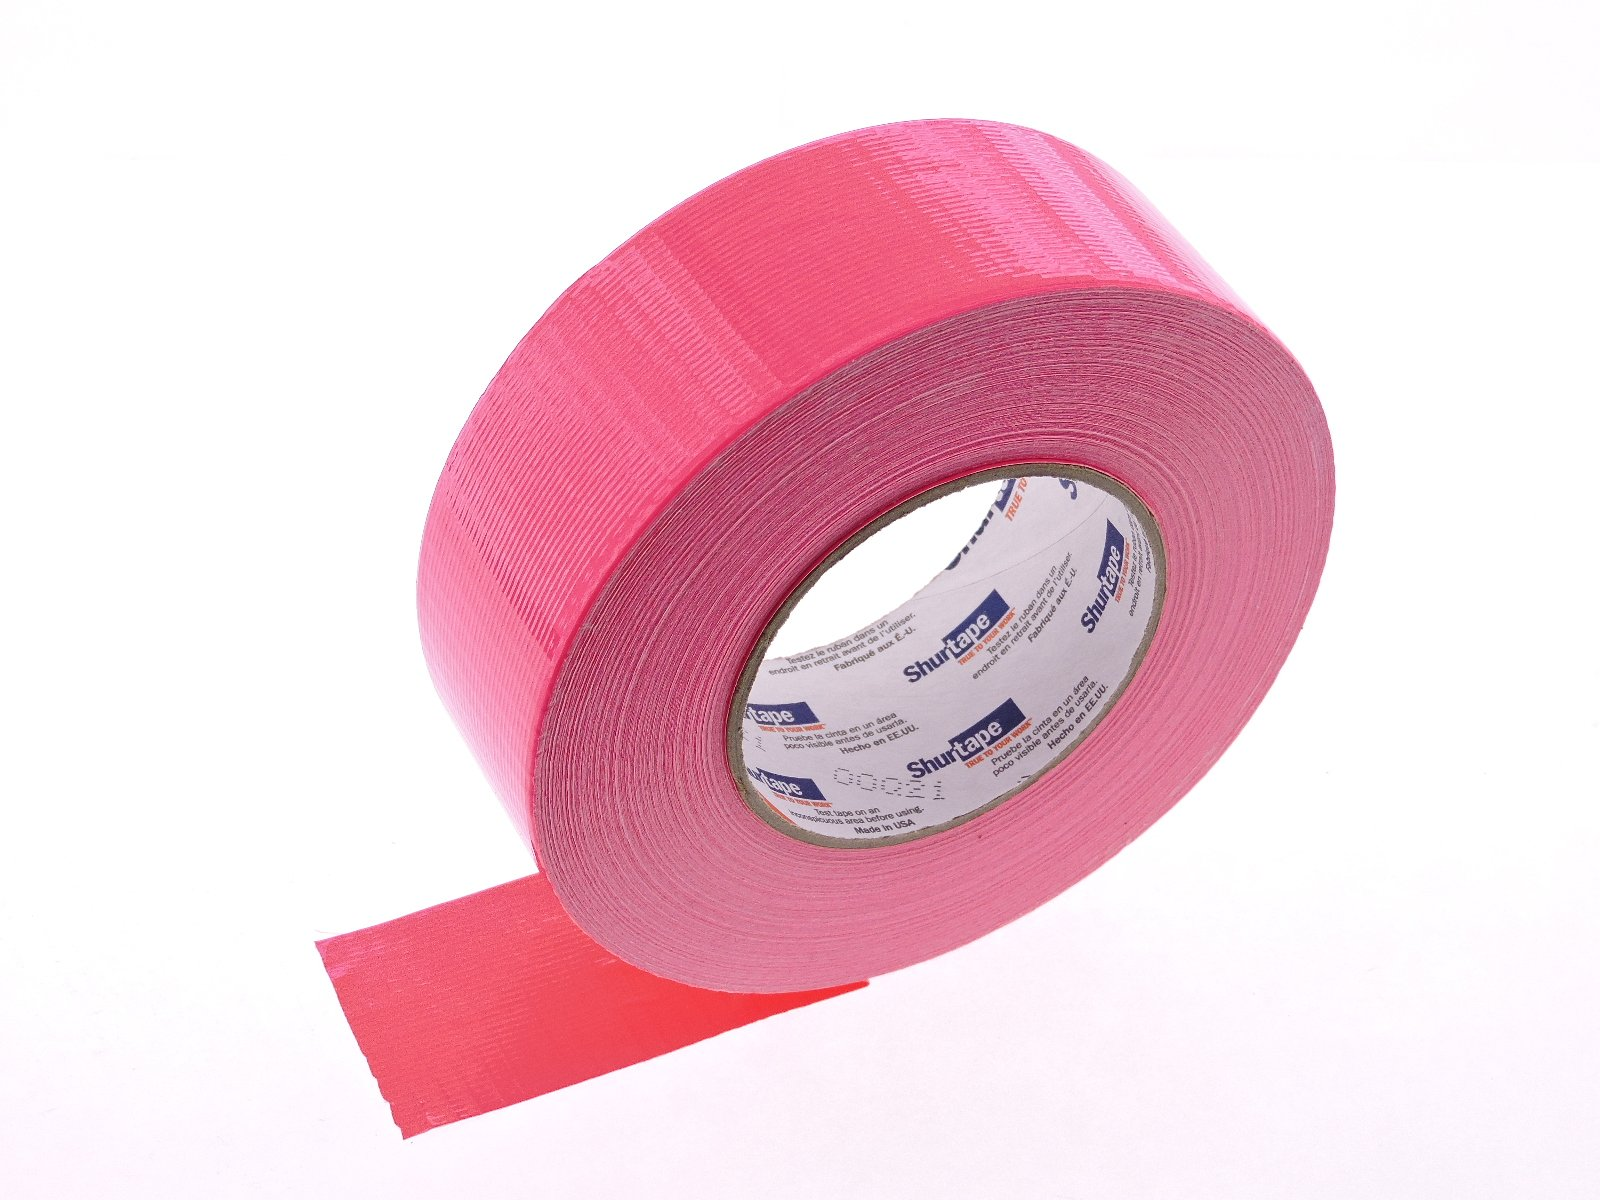 PC-619 Shurtape 2'' Pink Bright Fluorescent Magenta Neon Colored 9 Mil Cloth Duct Tape Water UV Tear Resistant 60yd USA Made Colors High Visibility Safety Warning Marking by Shurtape